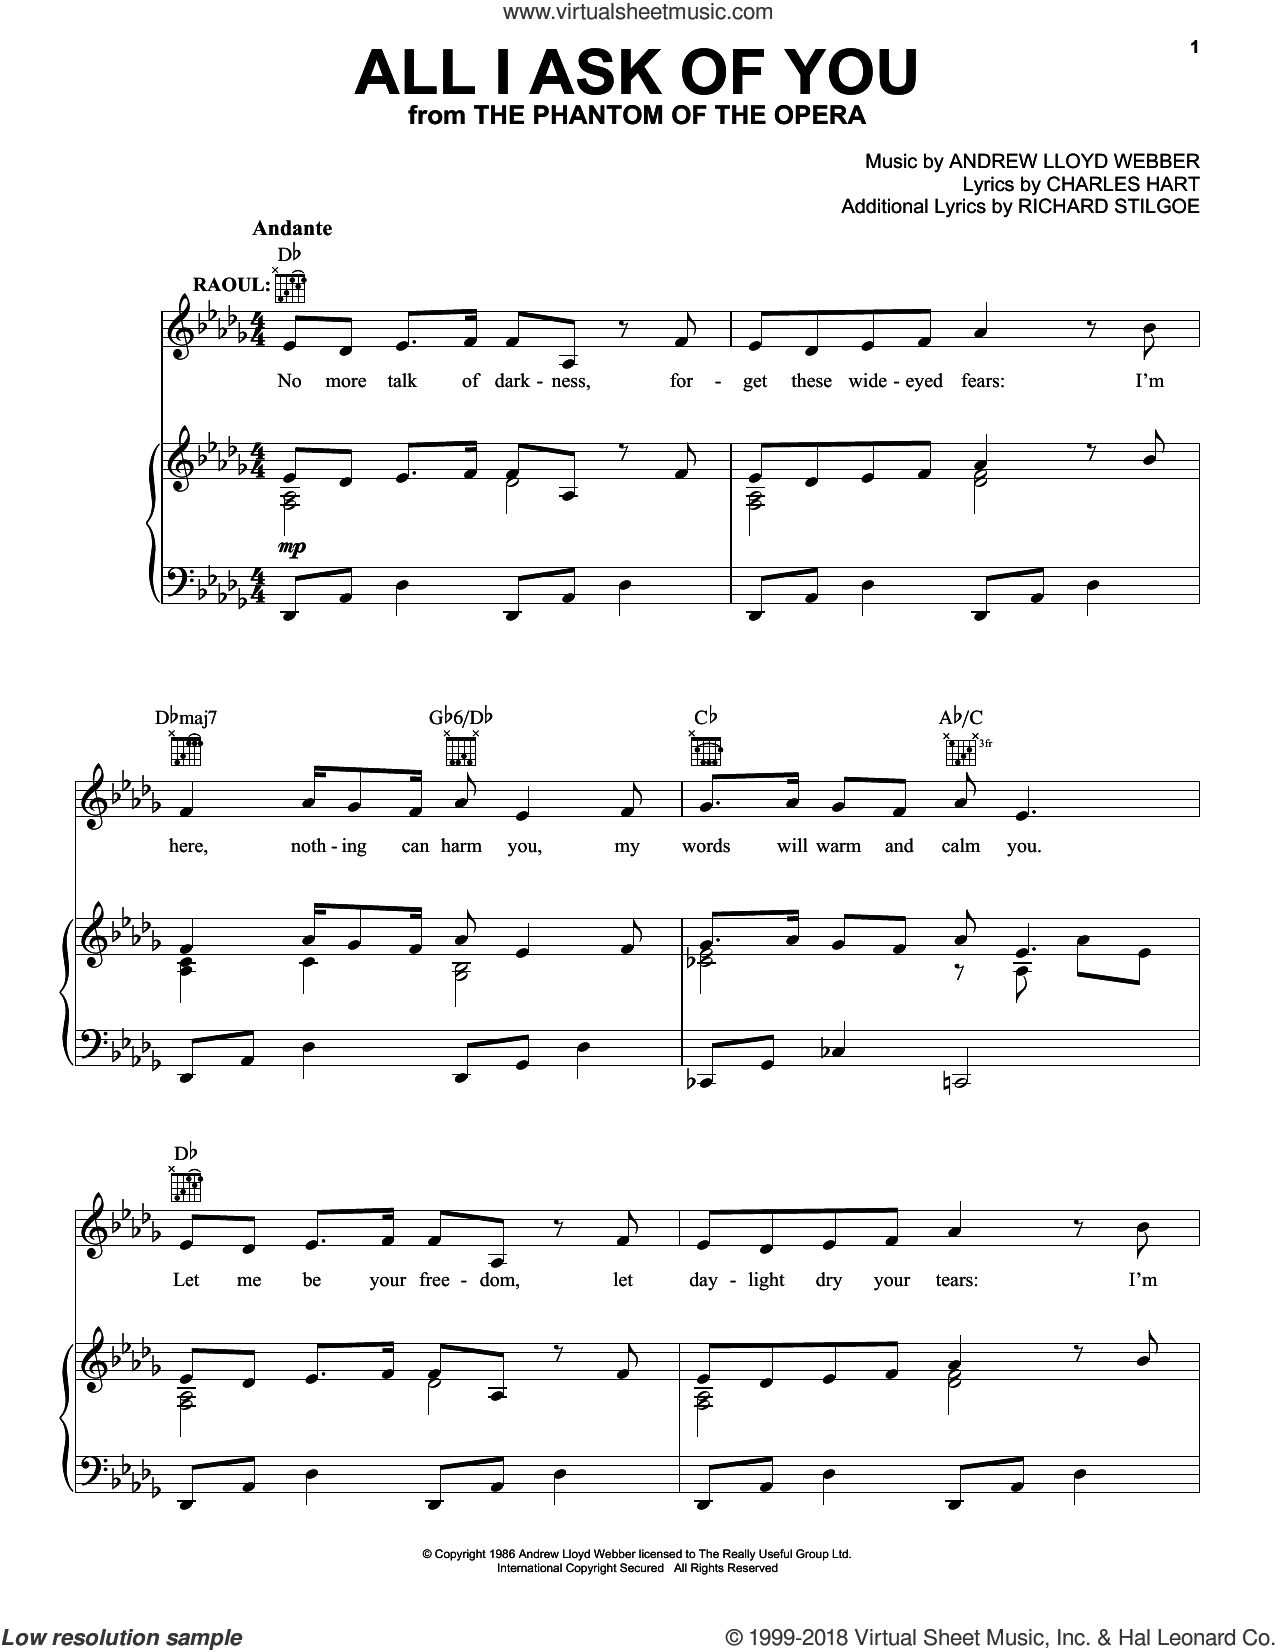 All I Ask Chords Webber All I Ask Of You From The Phantom Of The Opera Sheet Music For Voice Piano Or Guitar